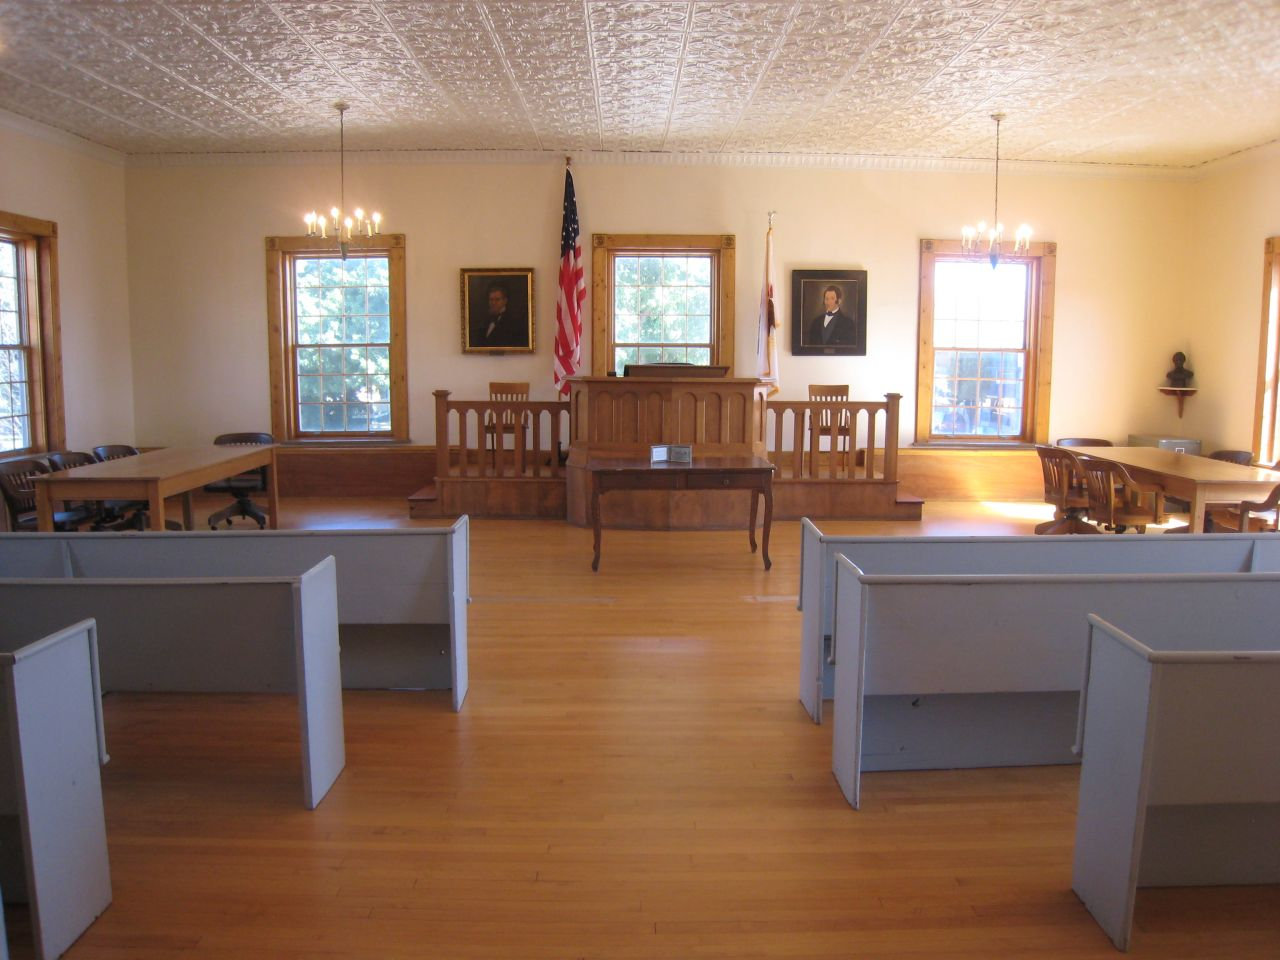 The Lincoln Courtroom